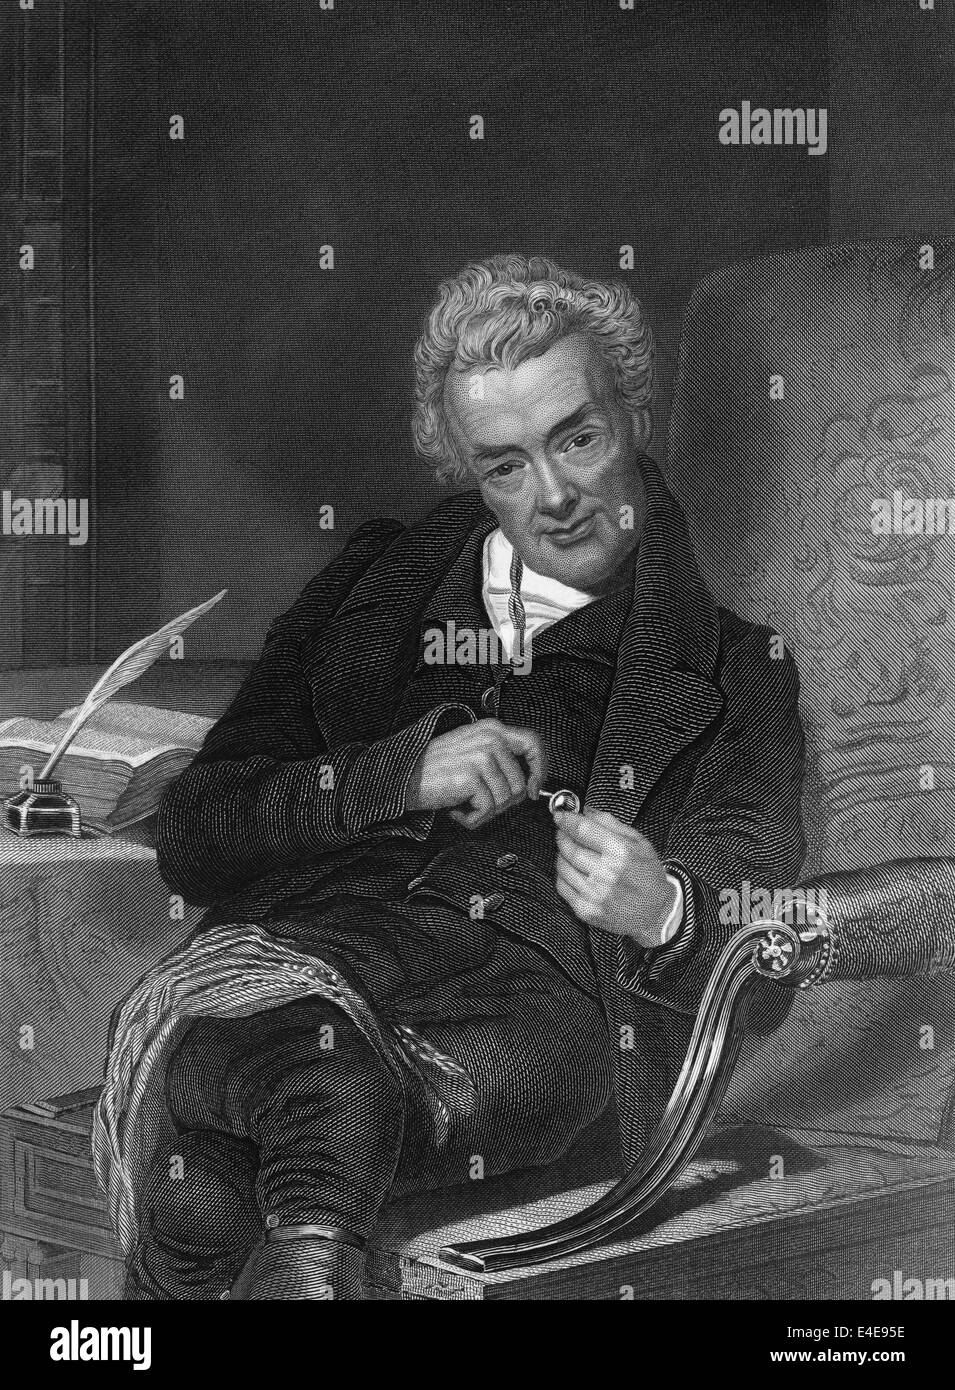 William Wilberforce, 1759 - 1833, an English politician, philanthropist, and a leader of the movement to abolish - Stock Image